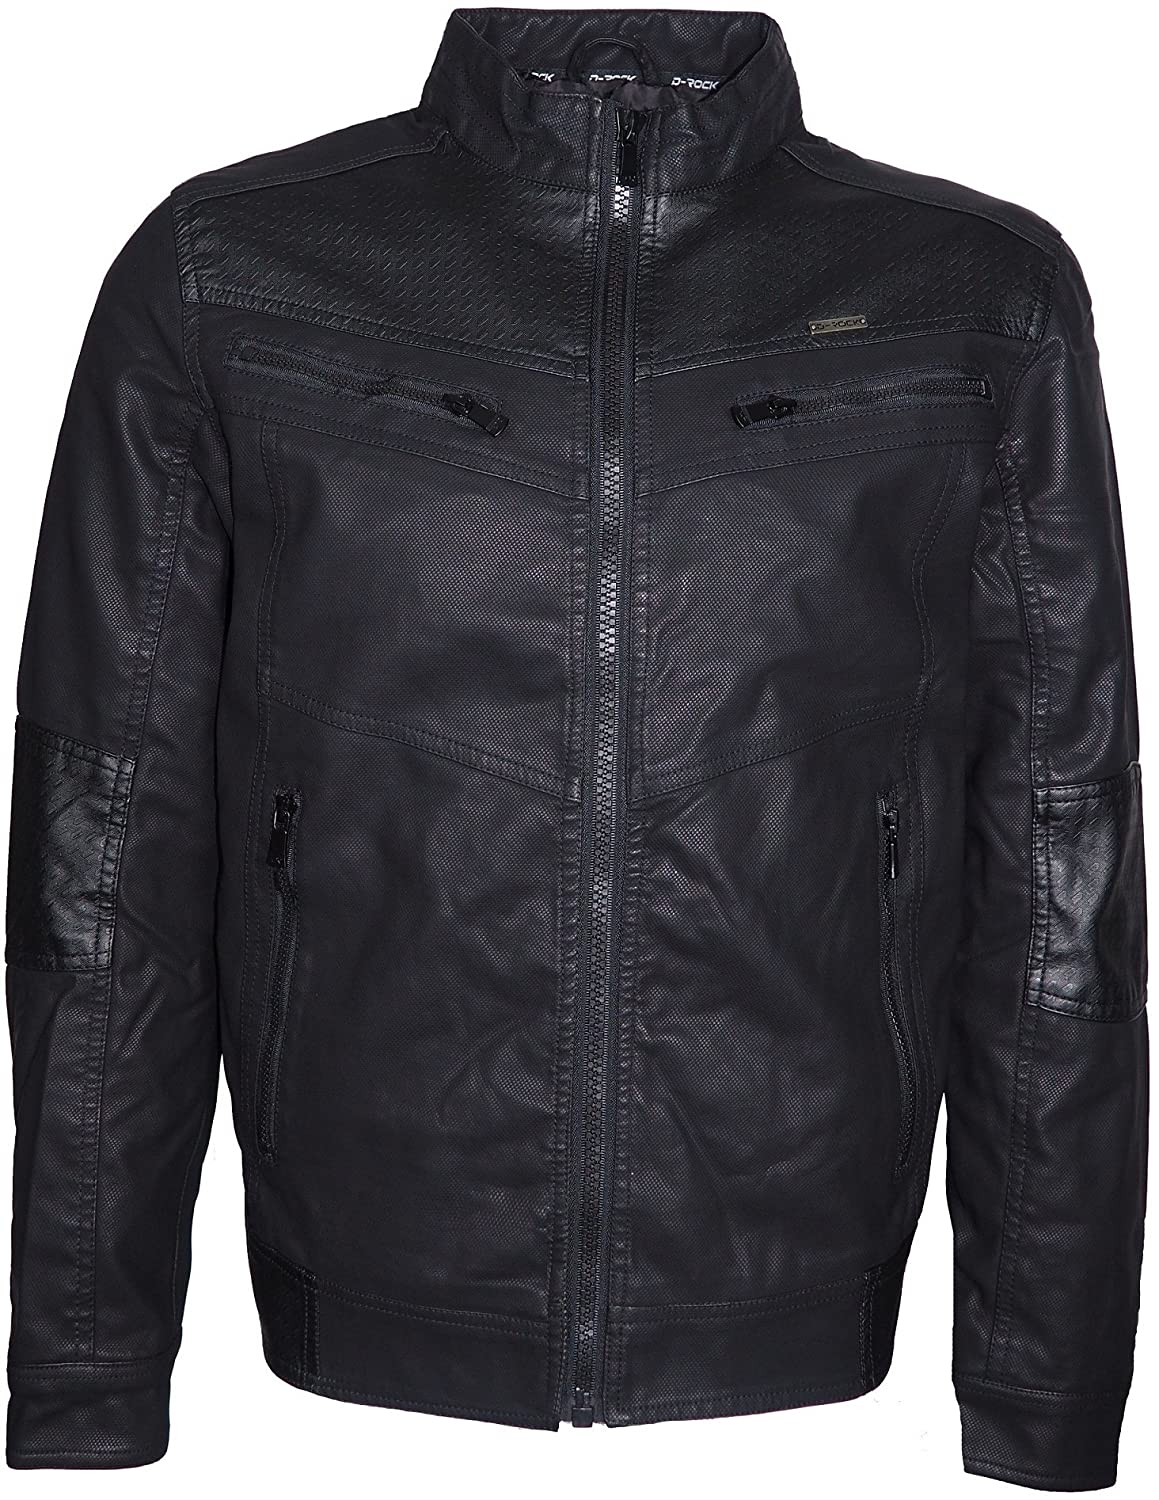 Men's Black Fuax Leather Crew-Neck Racing Biker Jacket